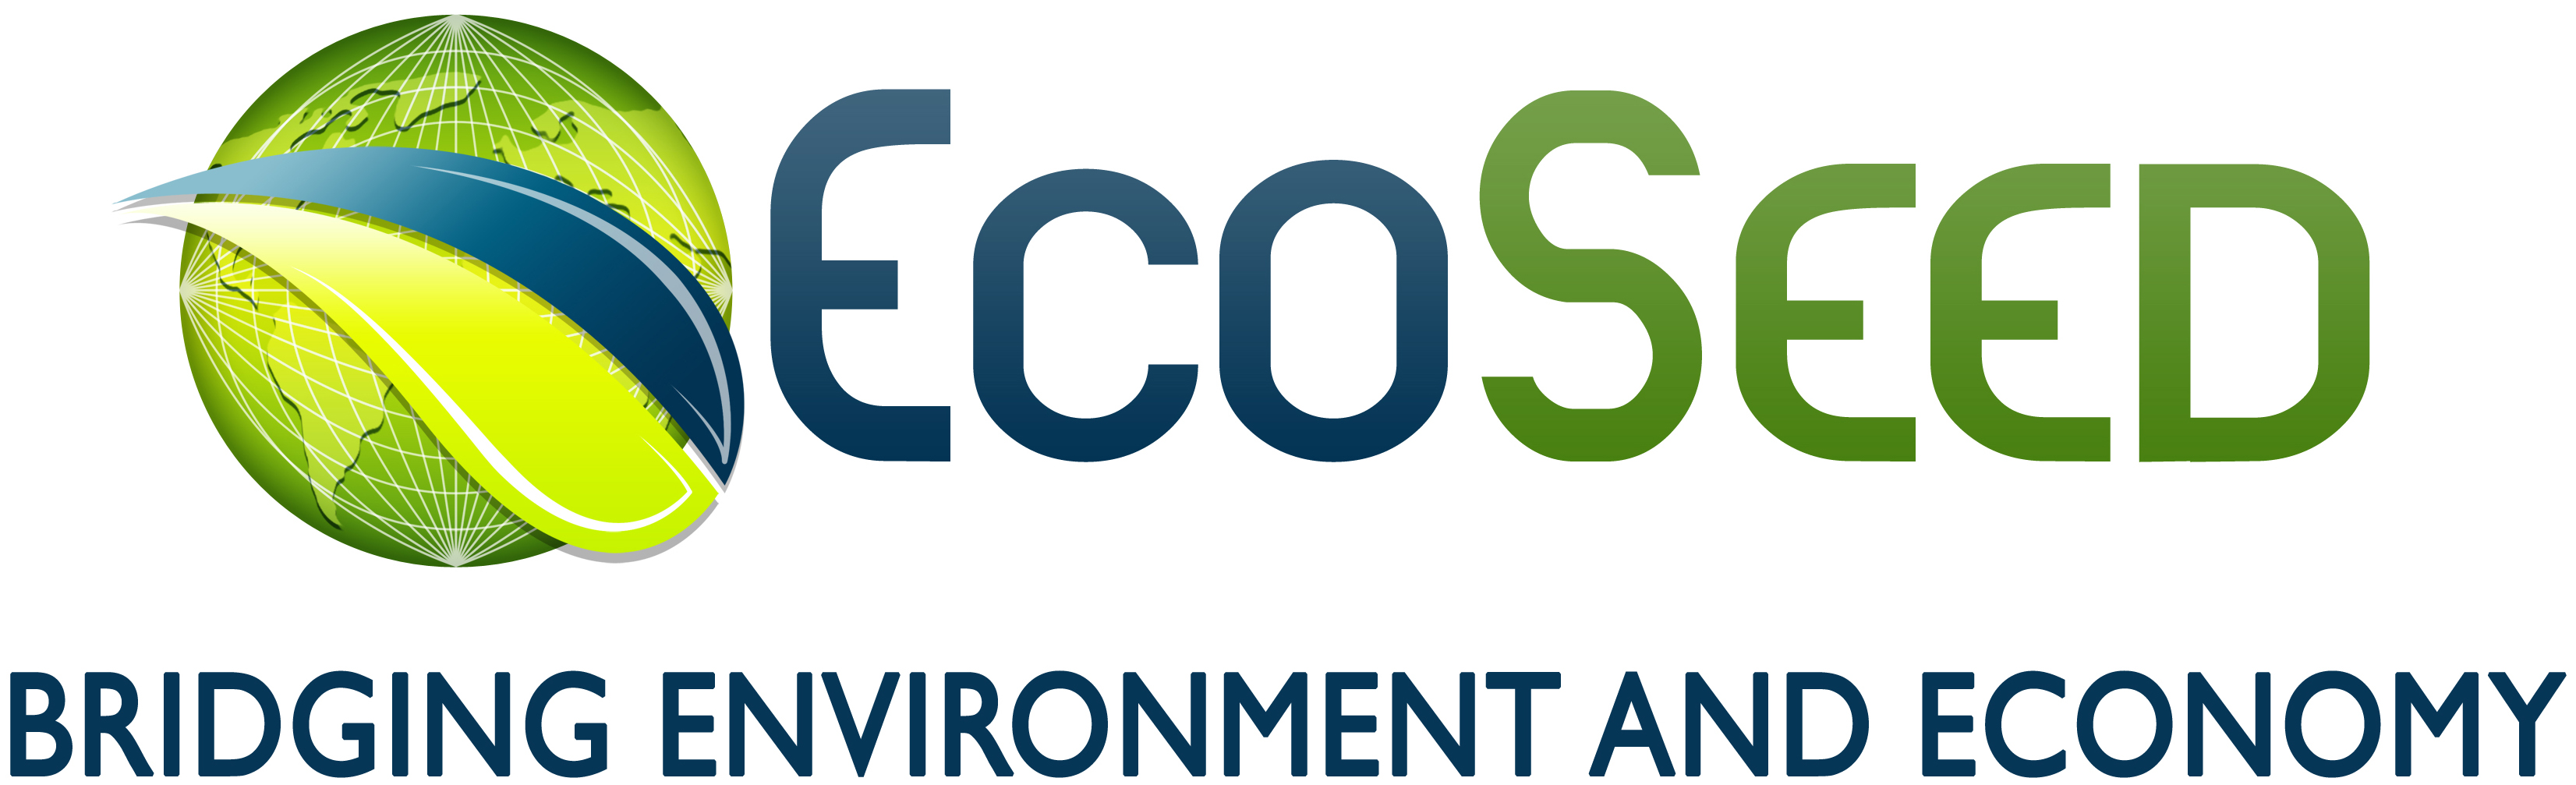 ecoseed logo_high res1.jpg